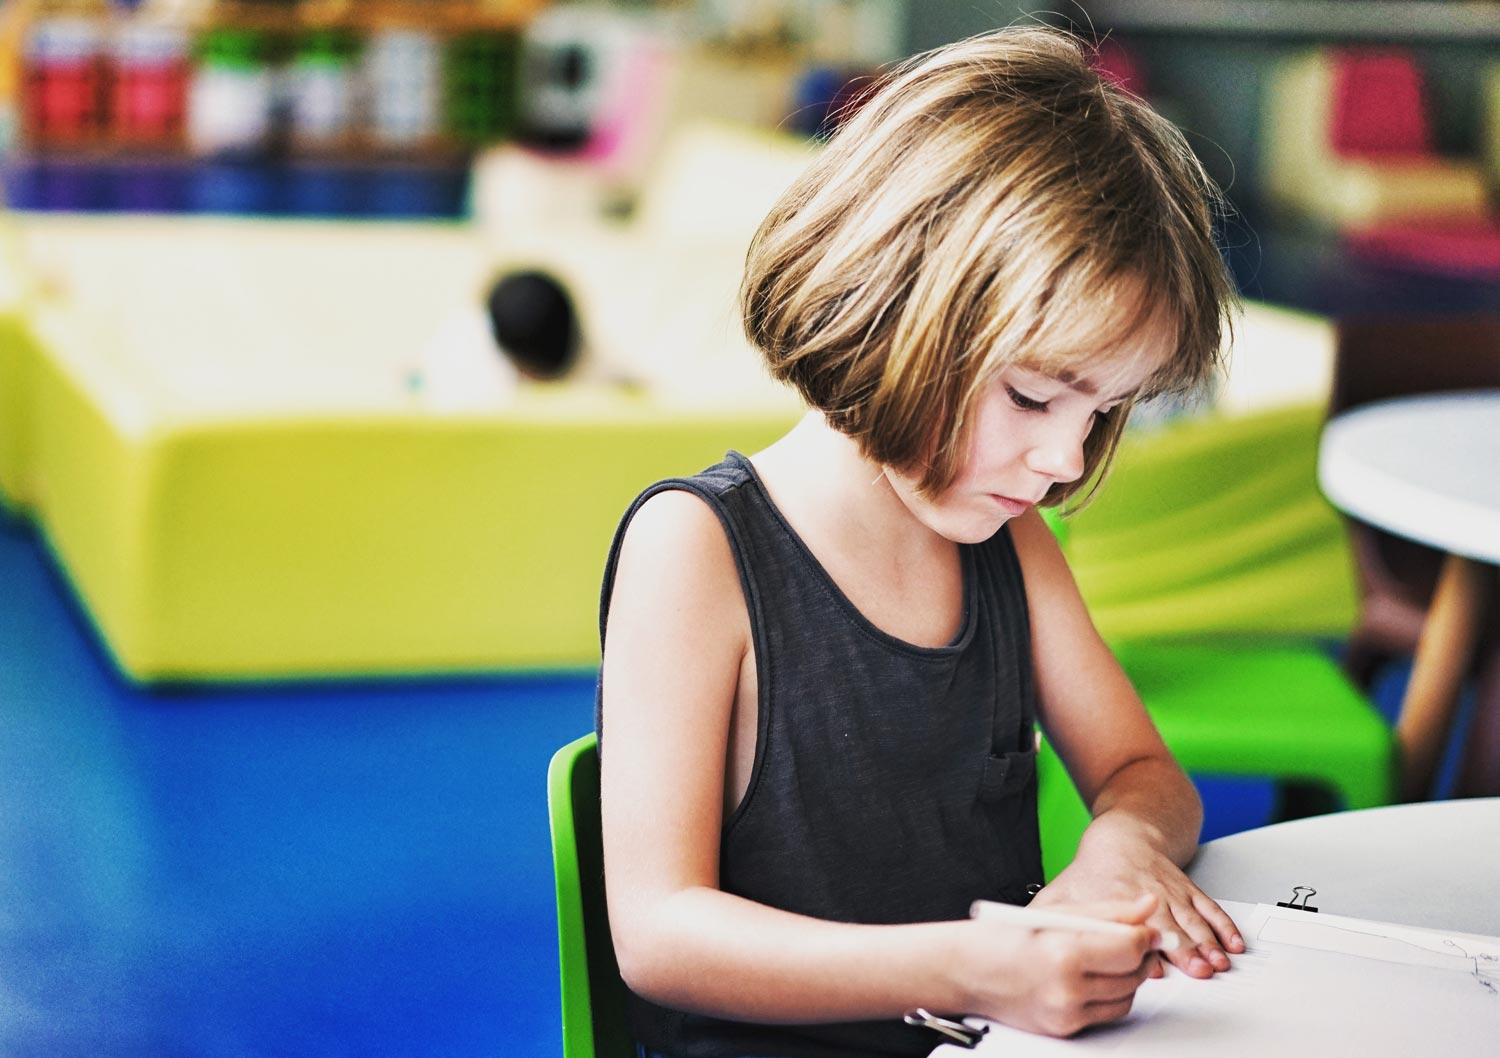 Girl seating on table writing on notebook